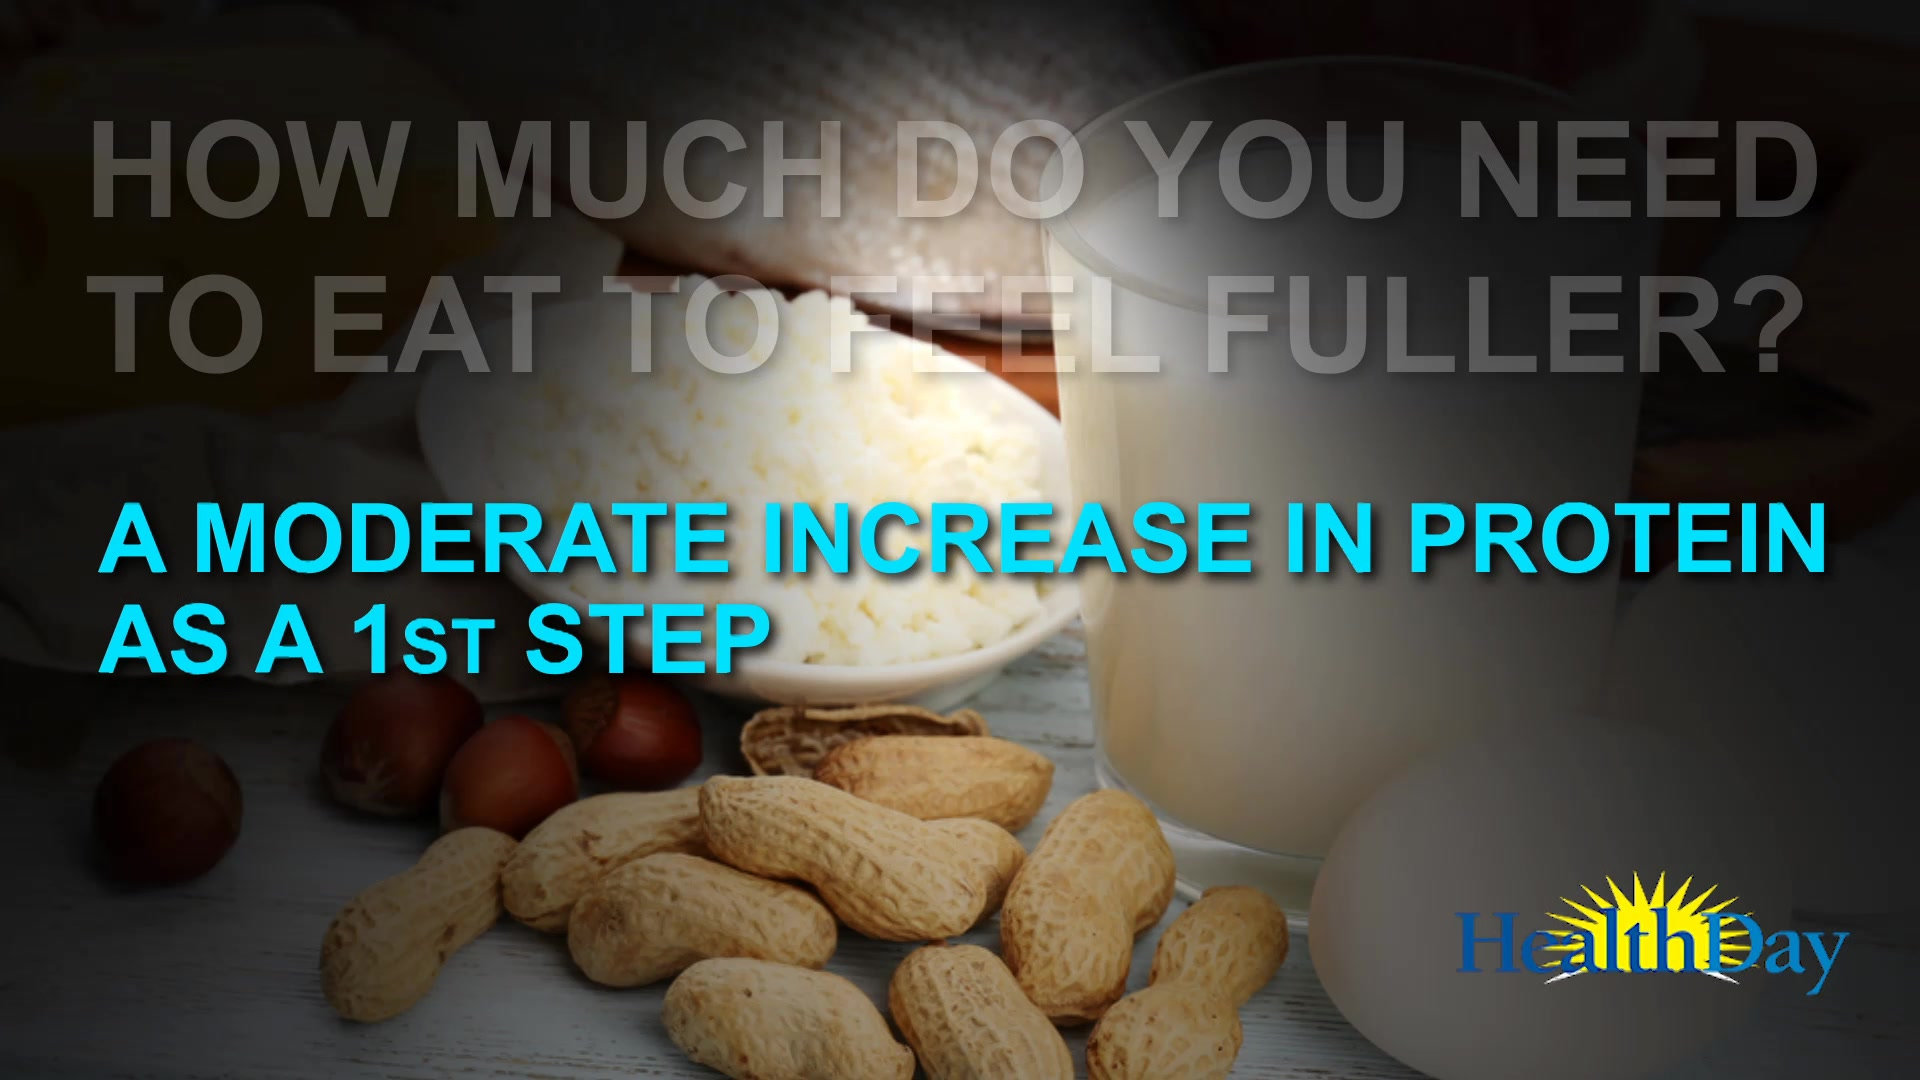 Protein Intake and Weight Loss